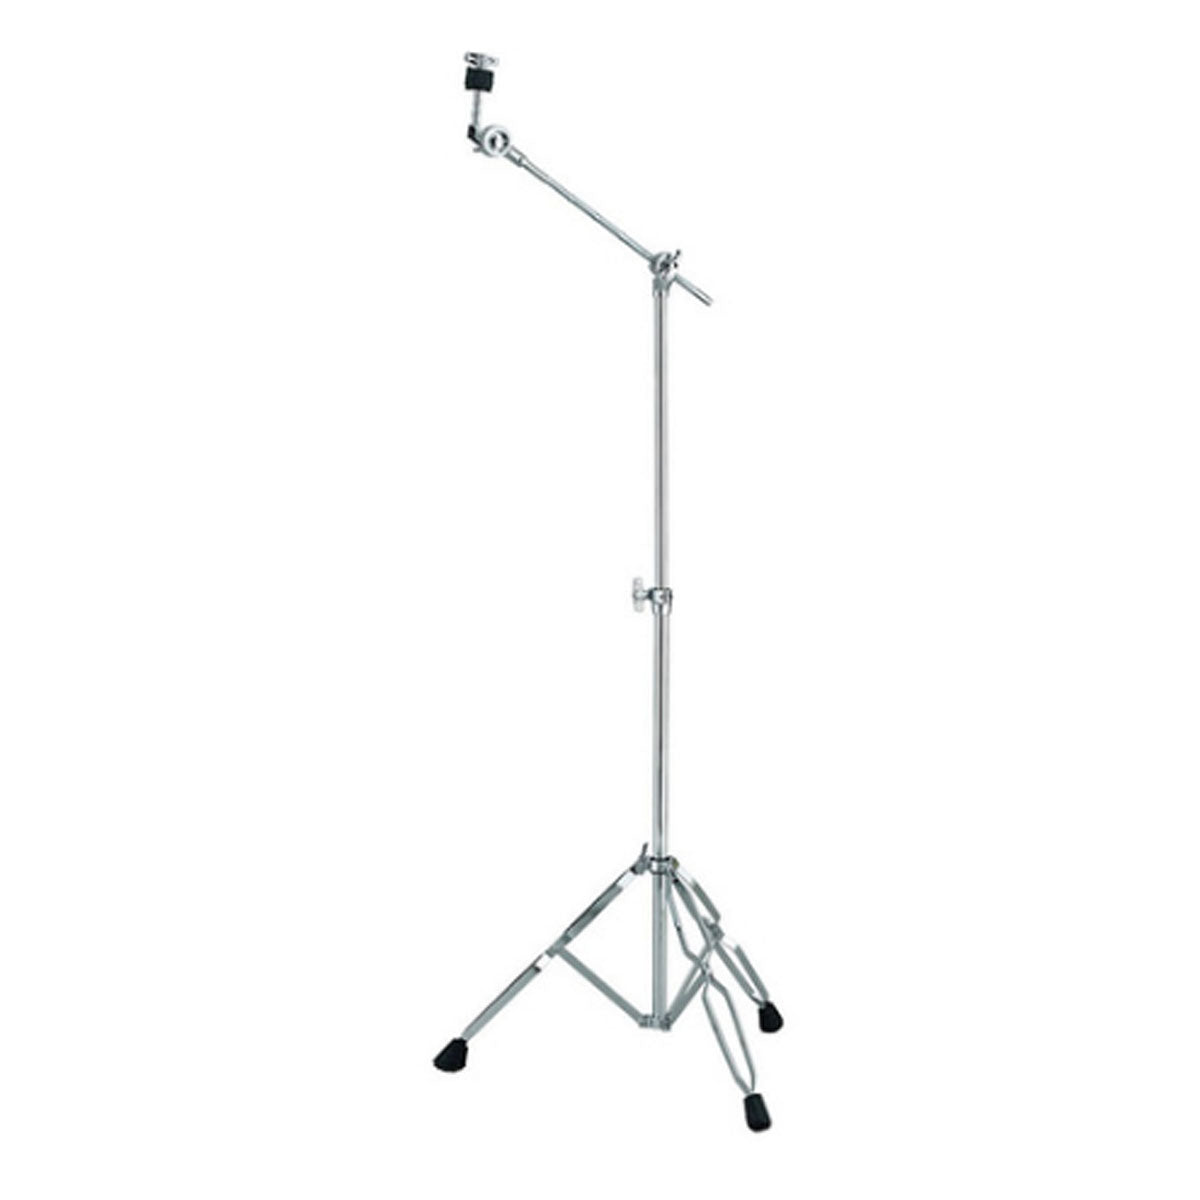 Dixon 9270 Series Boom Cymbal Stand Light-Weight Double Braced - PSY9270I